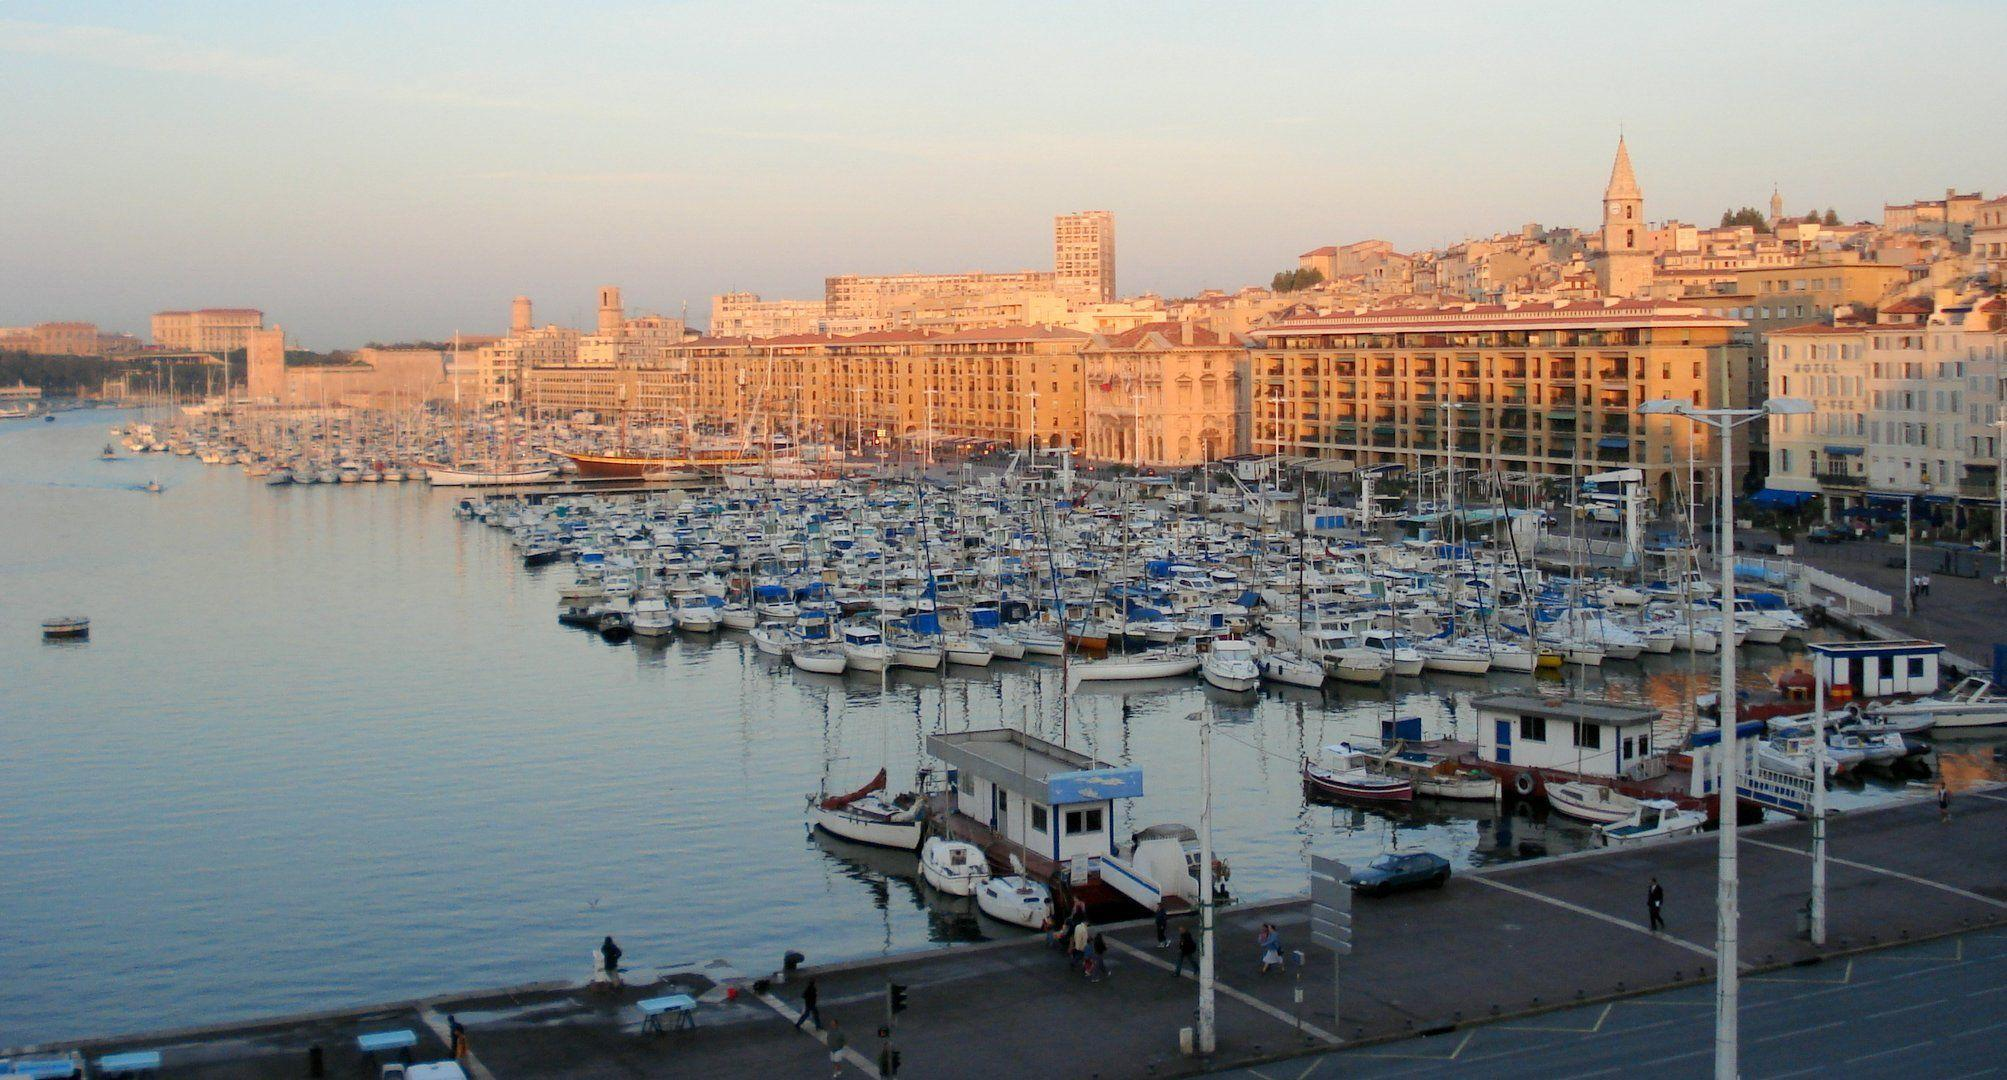 Sunset in the port city of Marseille, France wallpapers and image